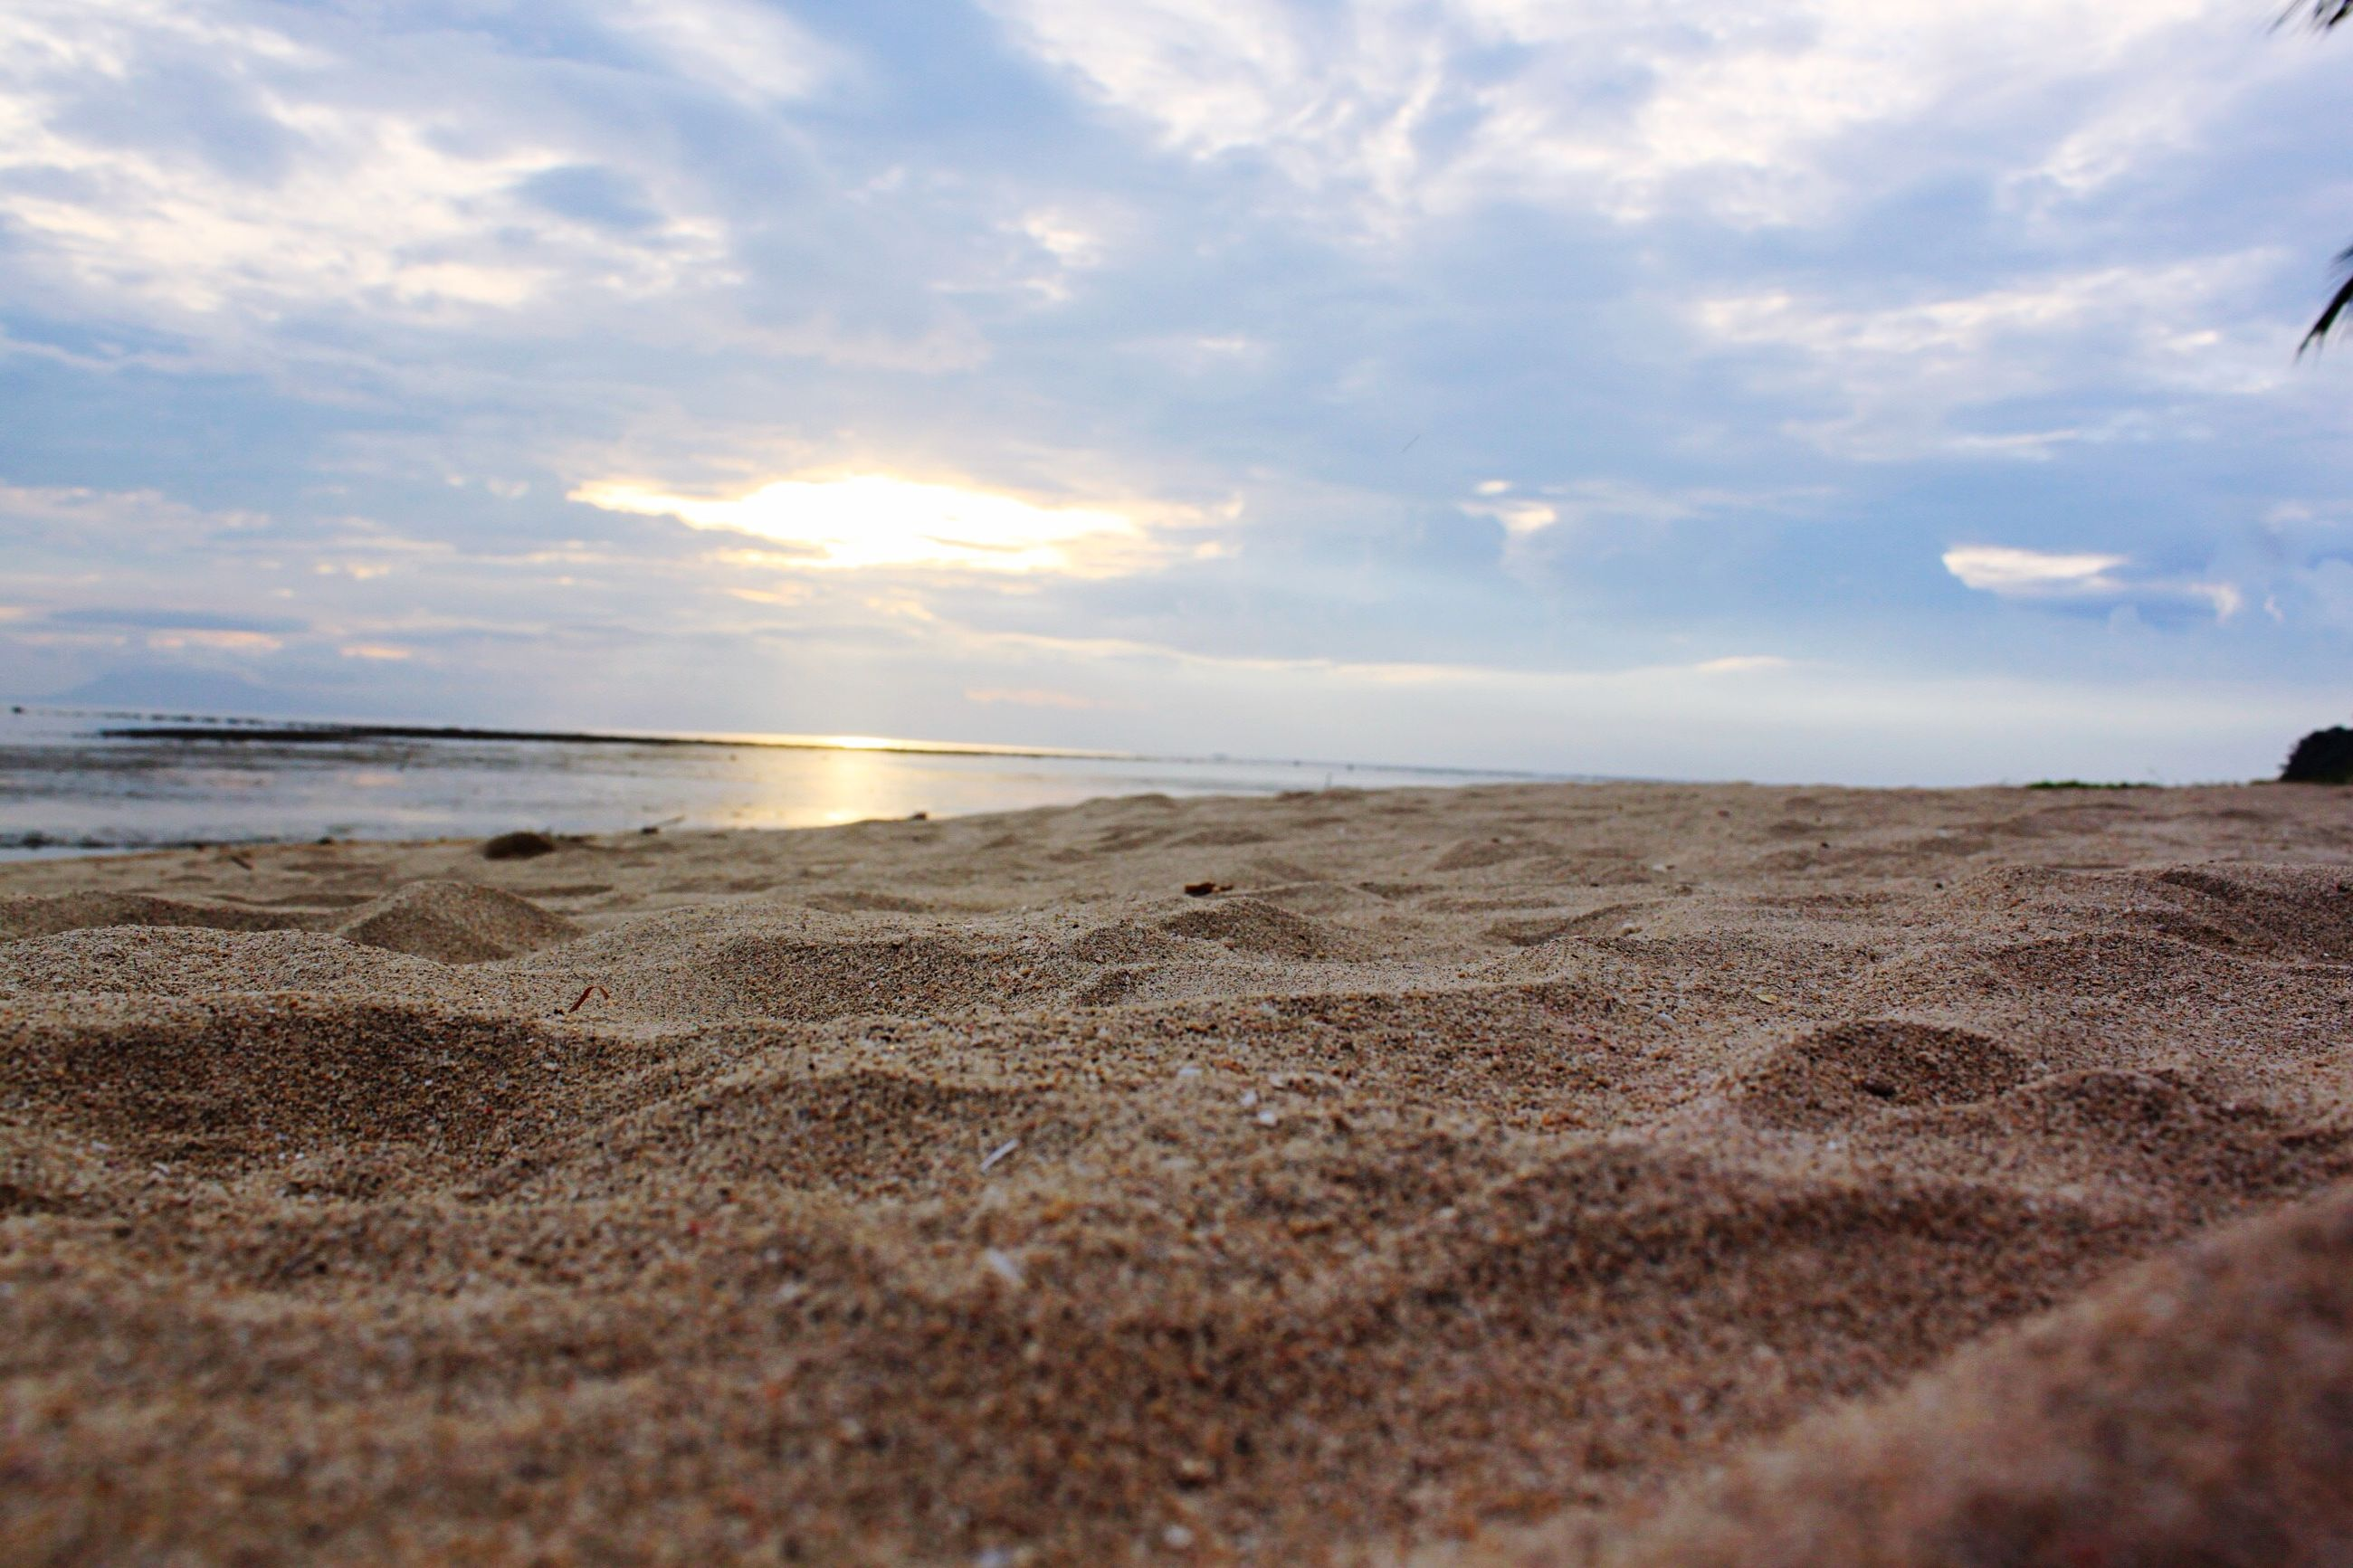 beach, sand, sky, sea, water, tranquil scene, shore, tranquility, scenics, horizon over water, beauty in nature, cloud - sky, nature, cloud, idyllic, coastline, cloudy, sunlight, reflection, calm